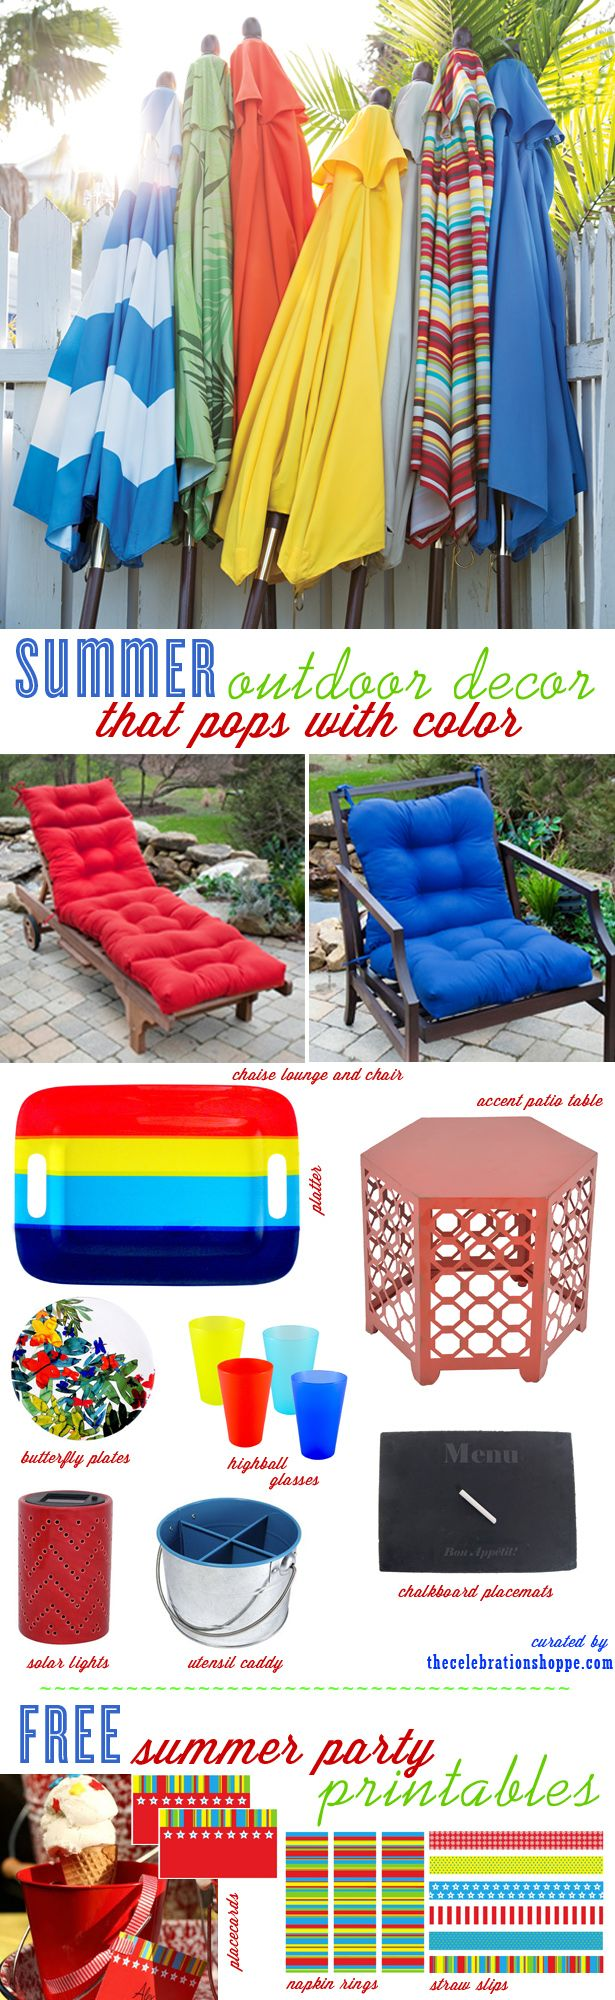 Summer Outdoor Décor + Free Summer Party Printables | Kim Byers